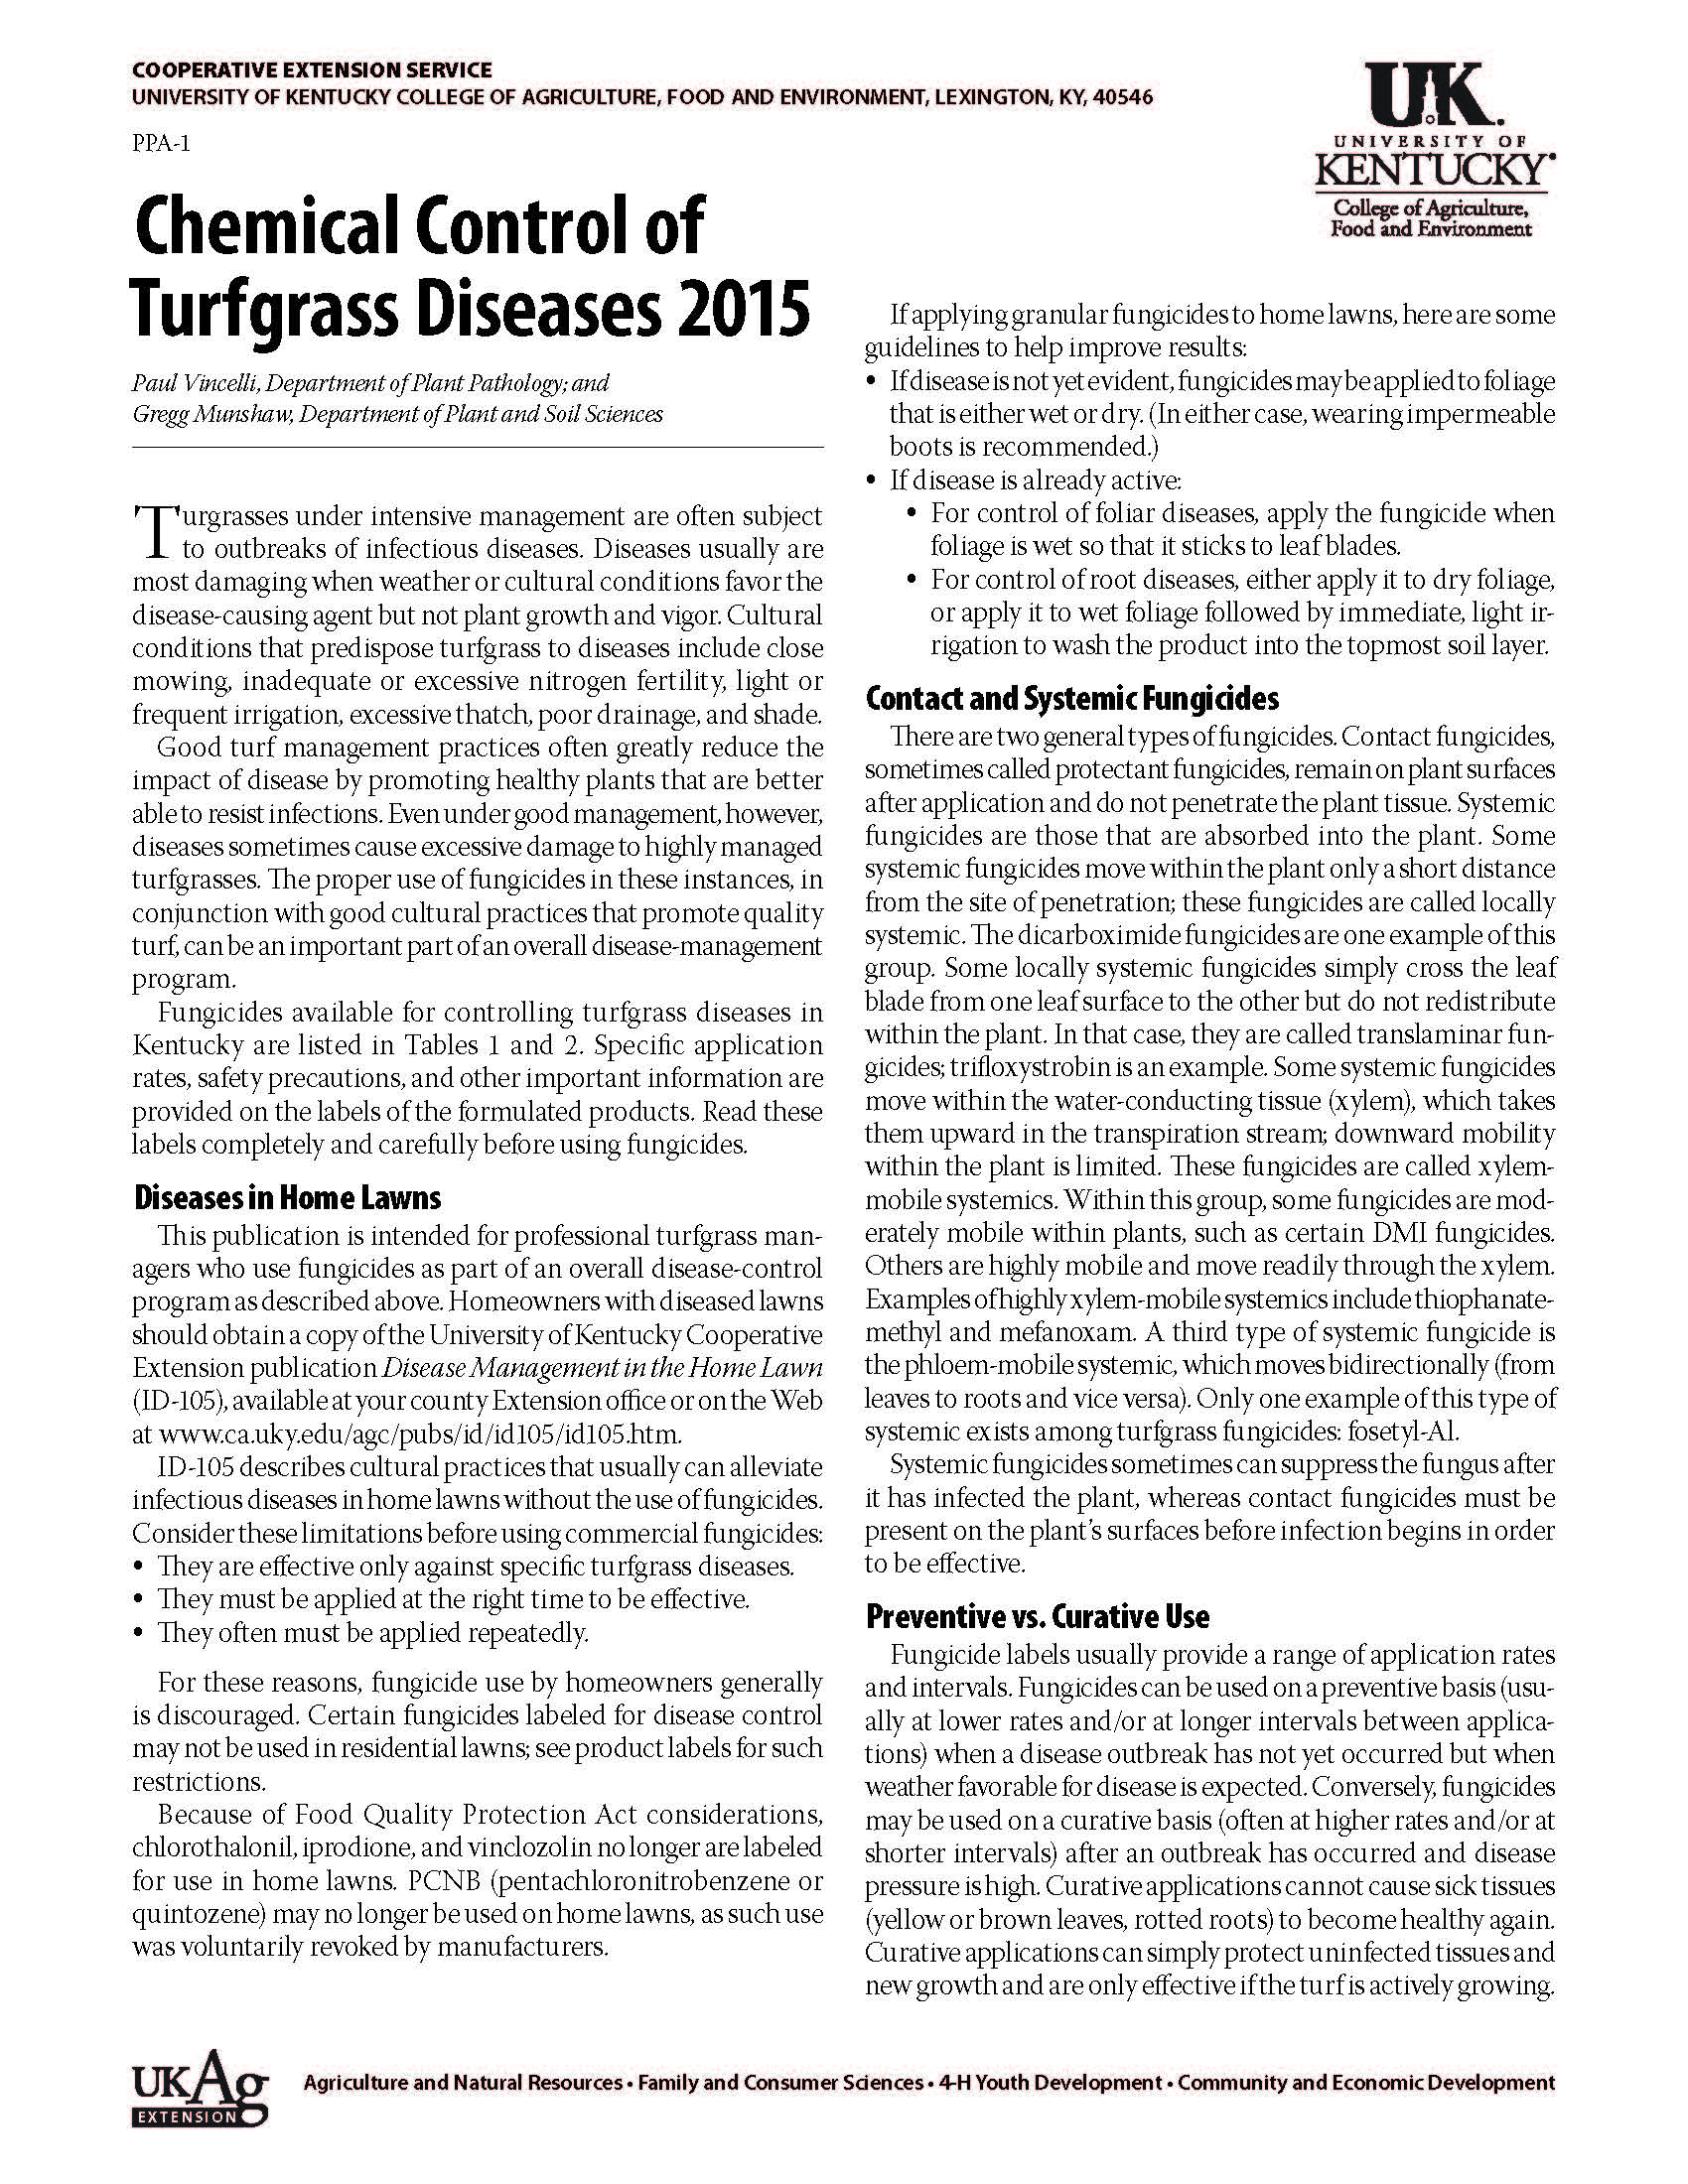 fungicides | K-State Turfgrass